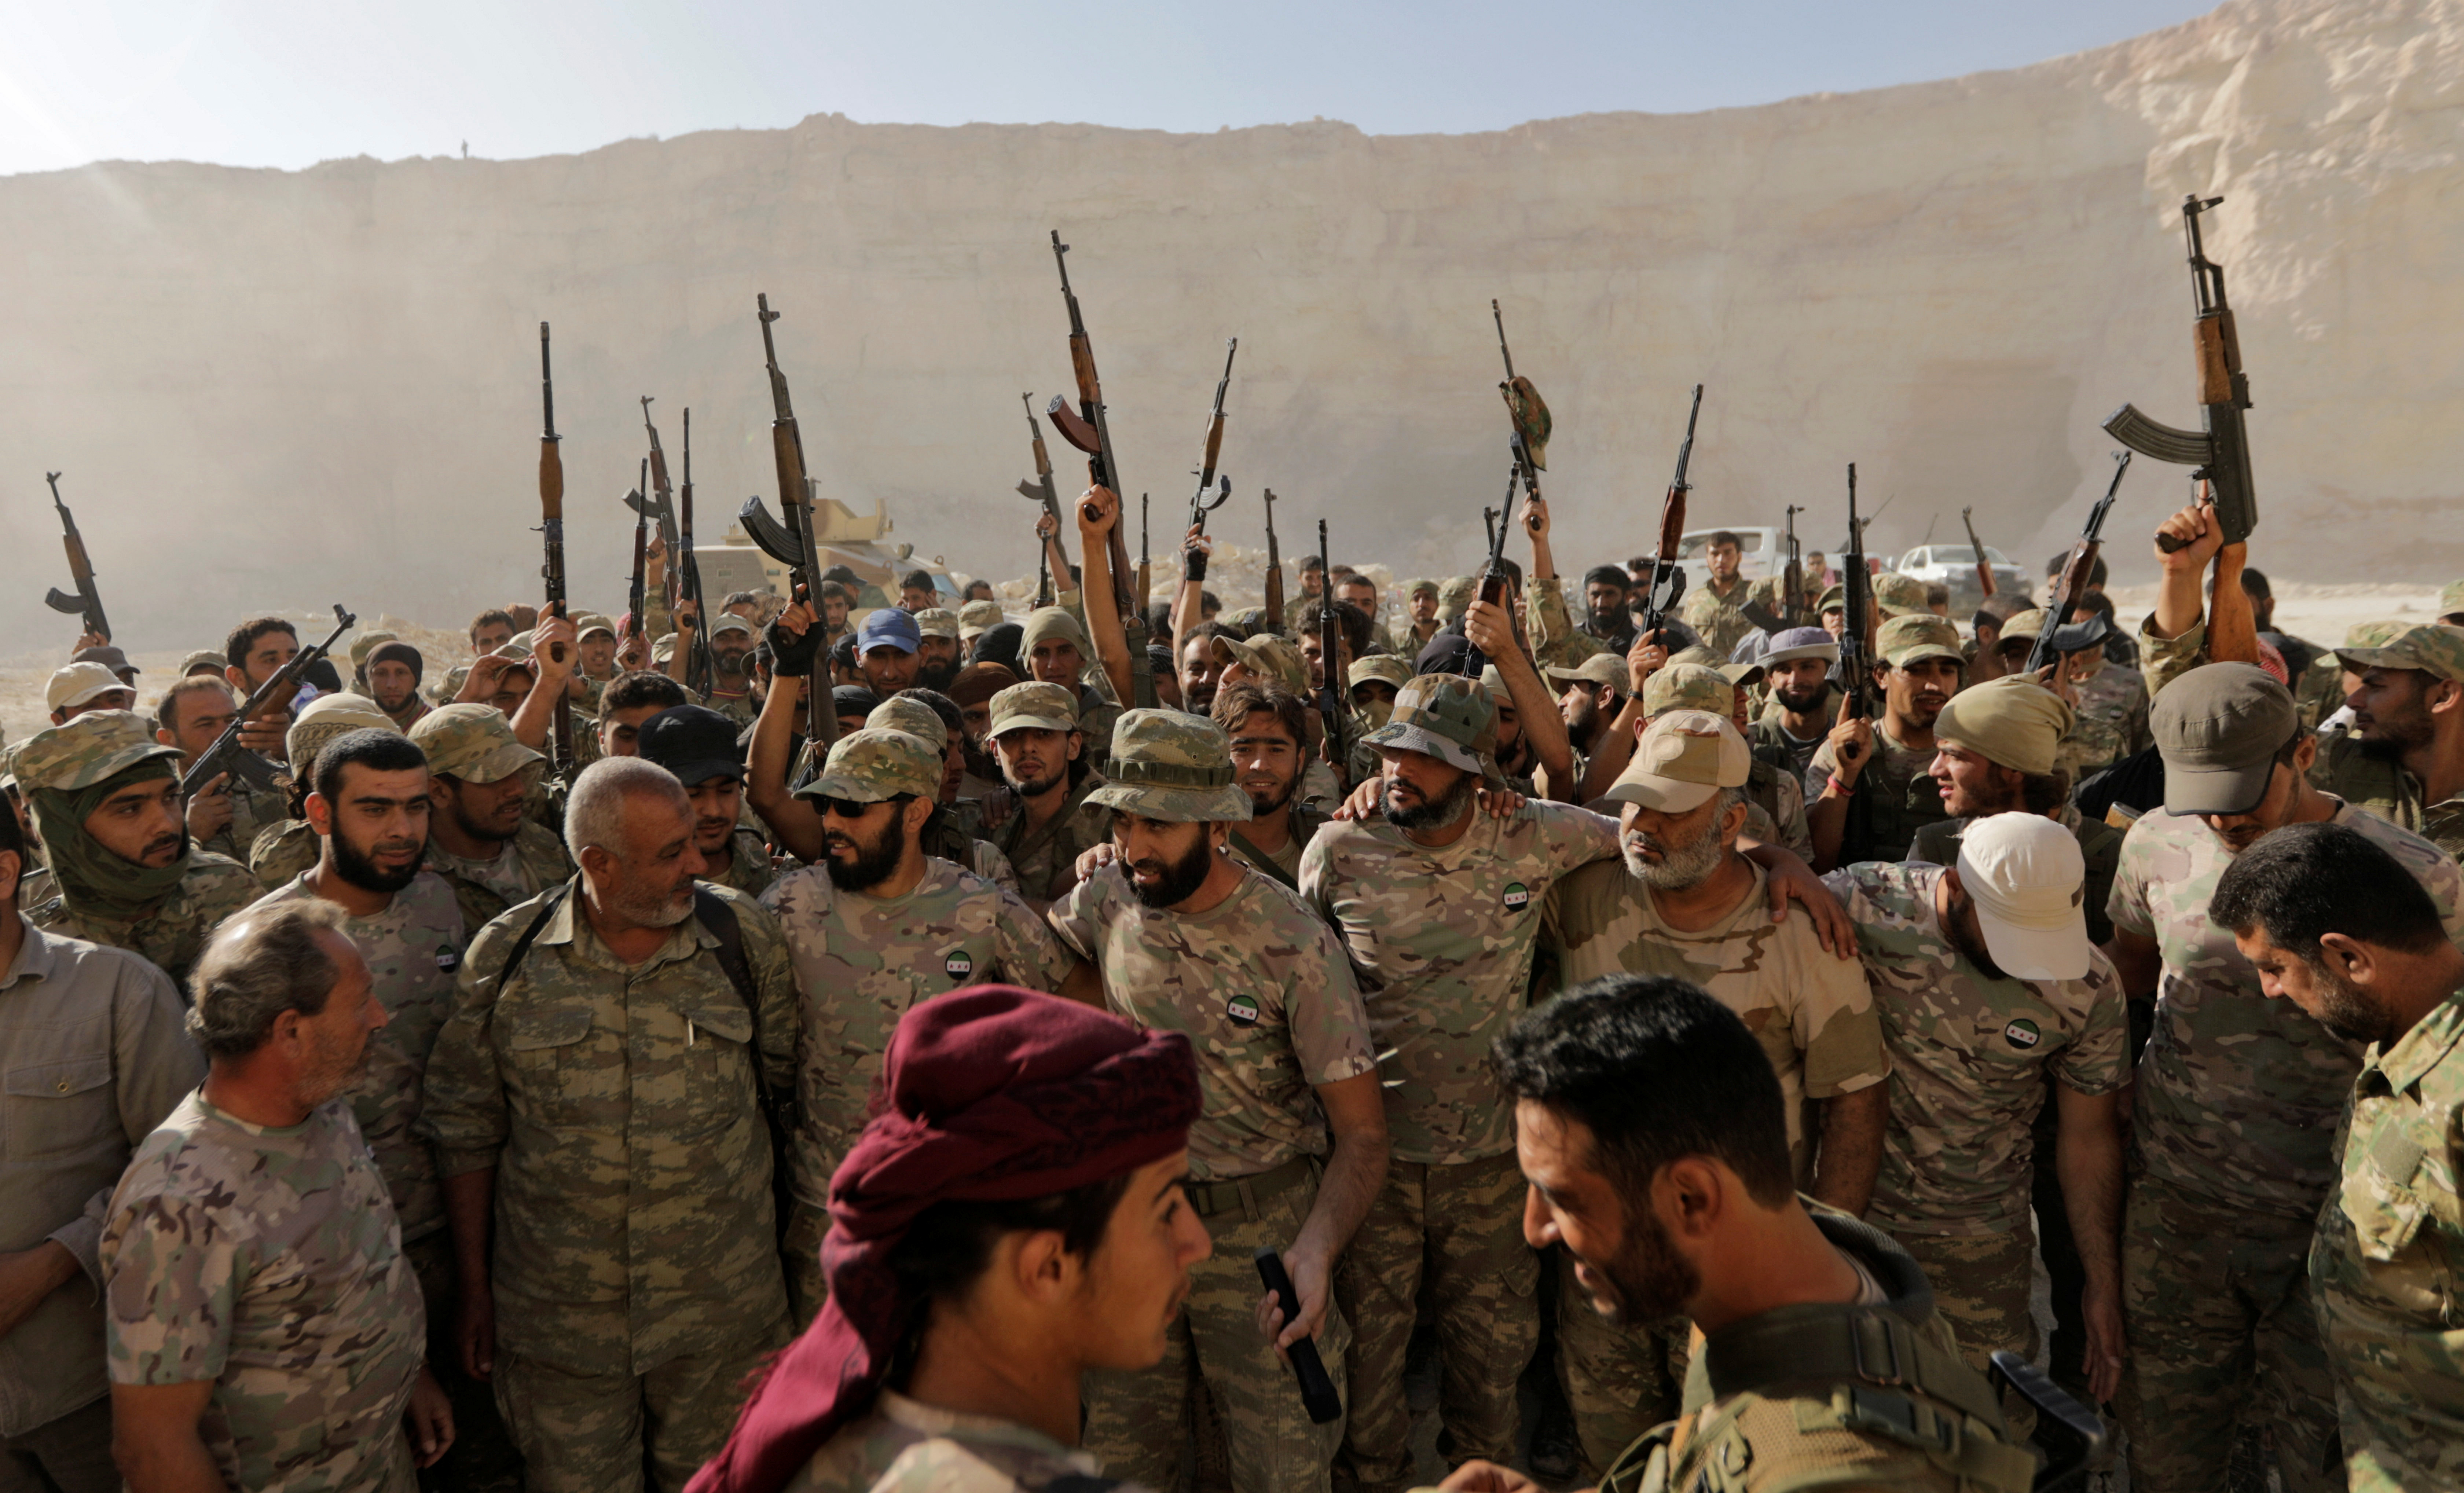 Uncle Sam's 'Moderate Rebels' Make a Comeback in Syria, But Now They're the Bad Guys